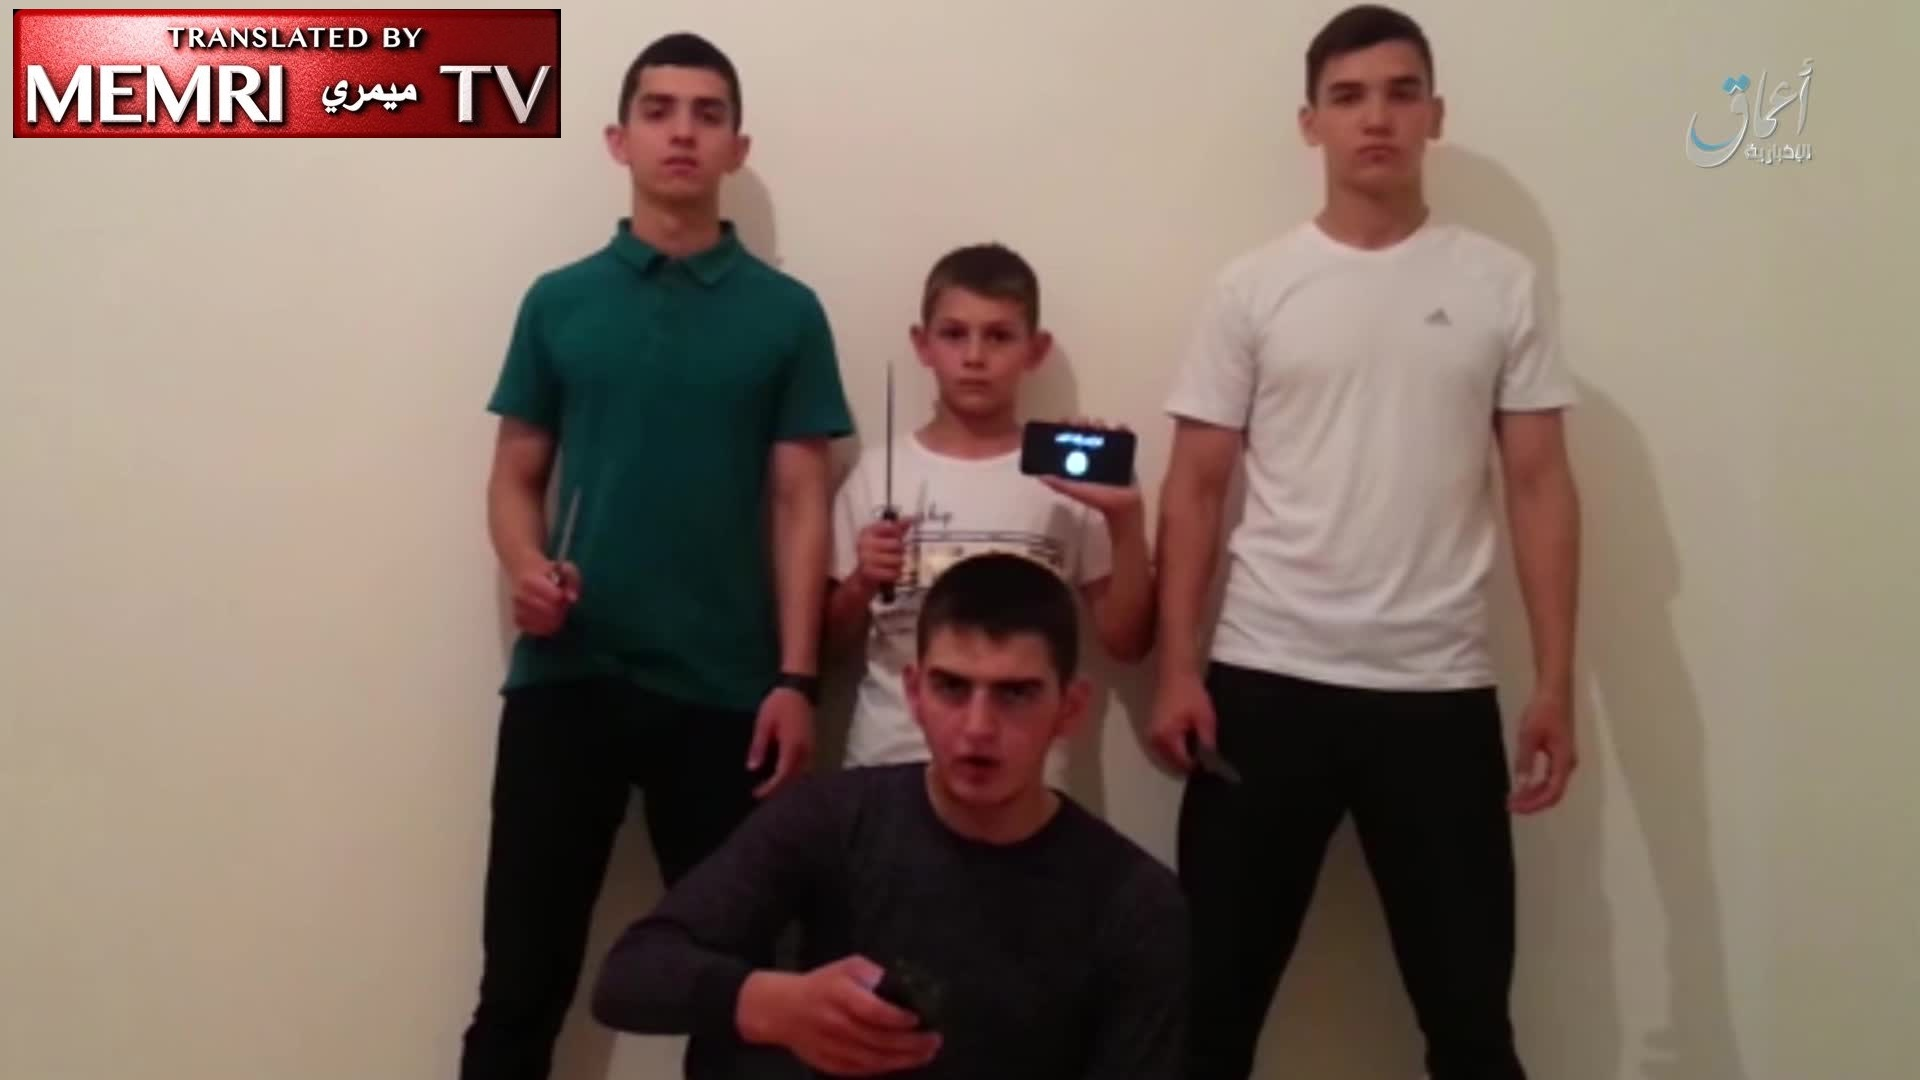 Child Perpetrators of Chechnya Attacks Pledge Allegiance to ISIS: We Shall Write Our Words in Our Blood When We Are Martyred